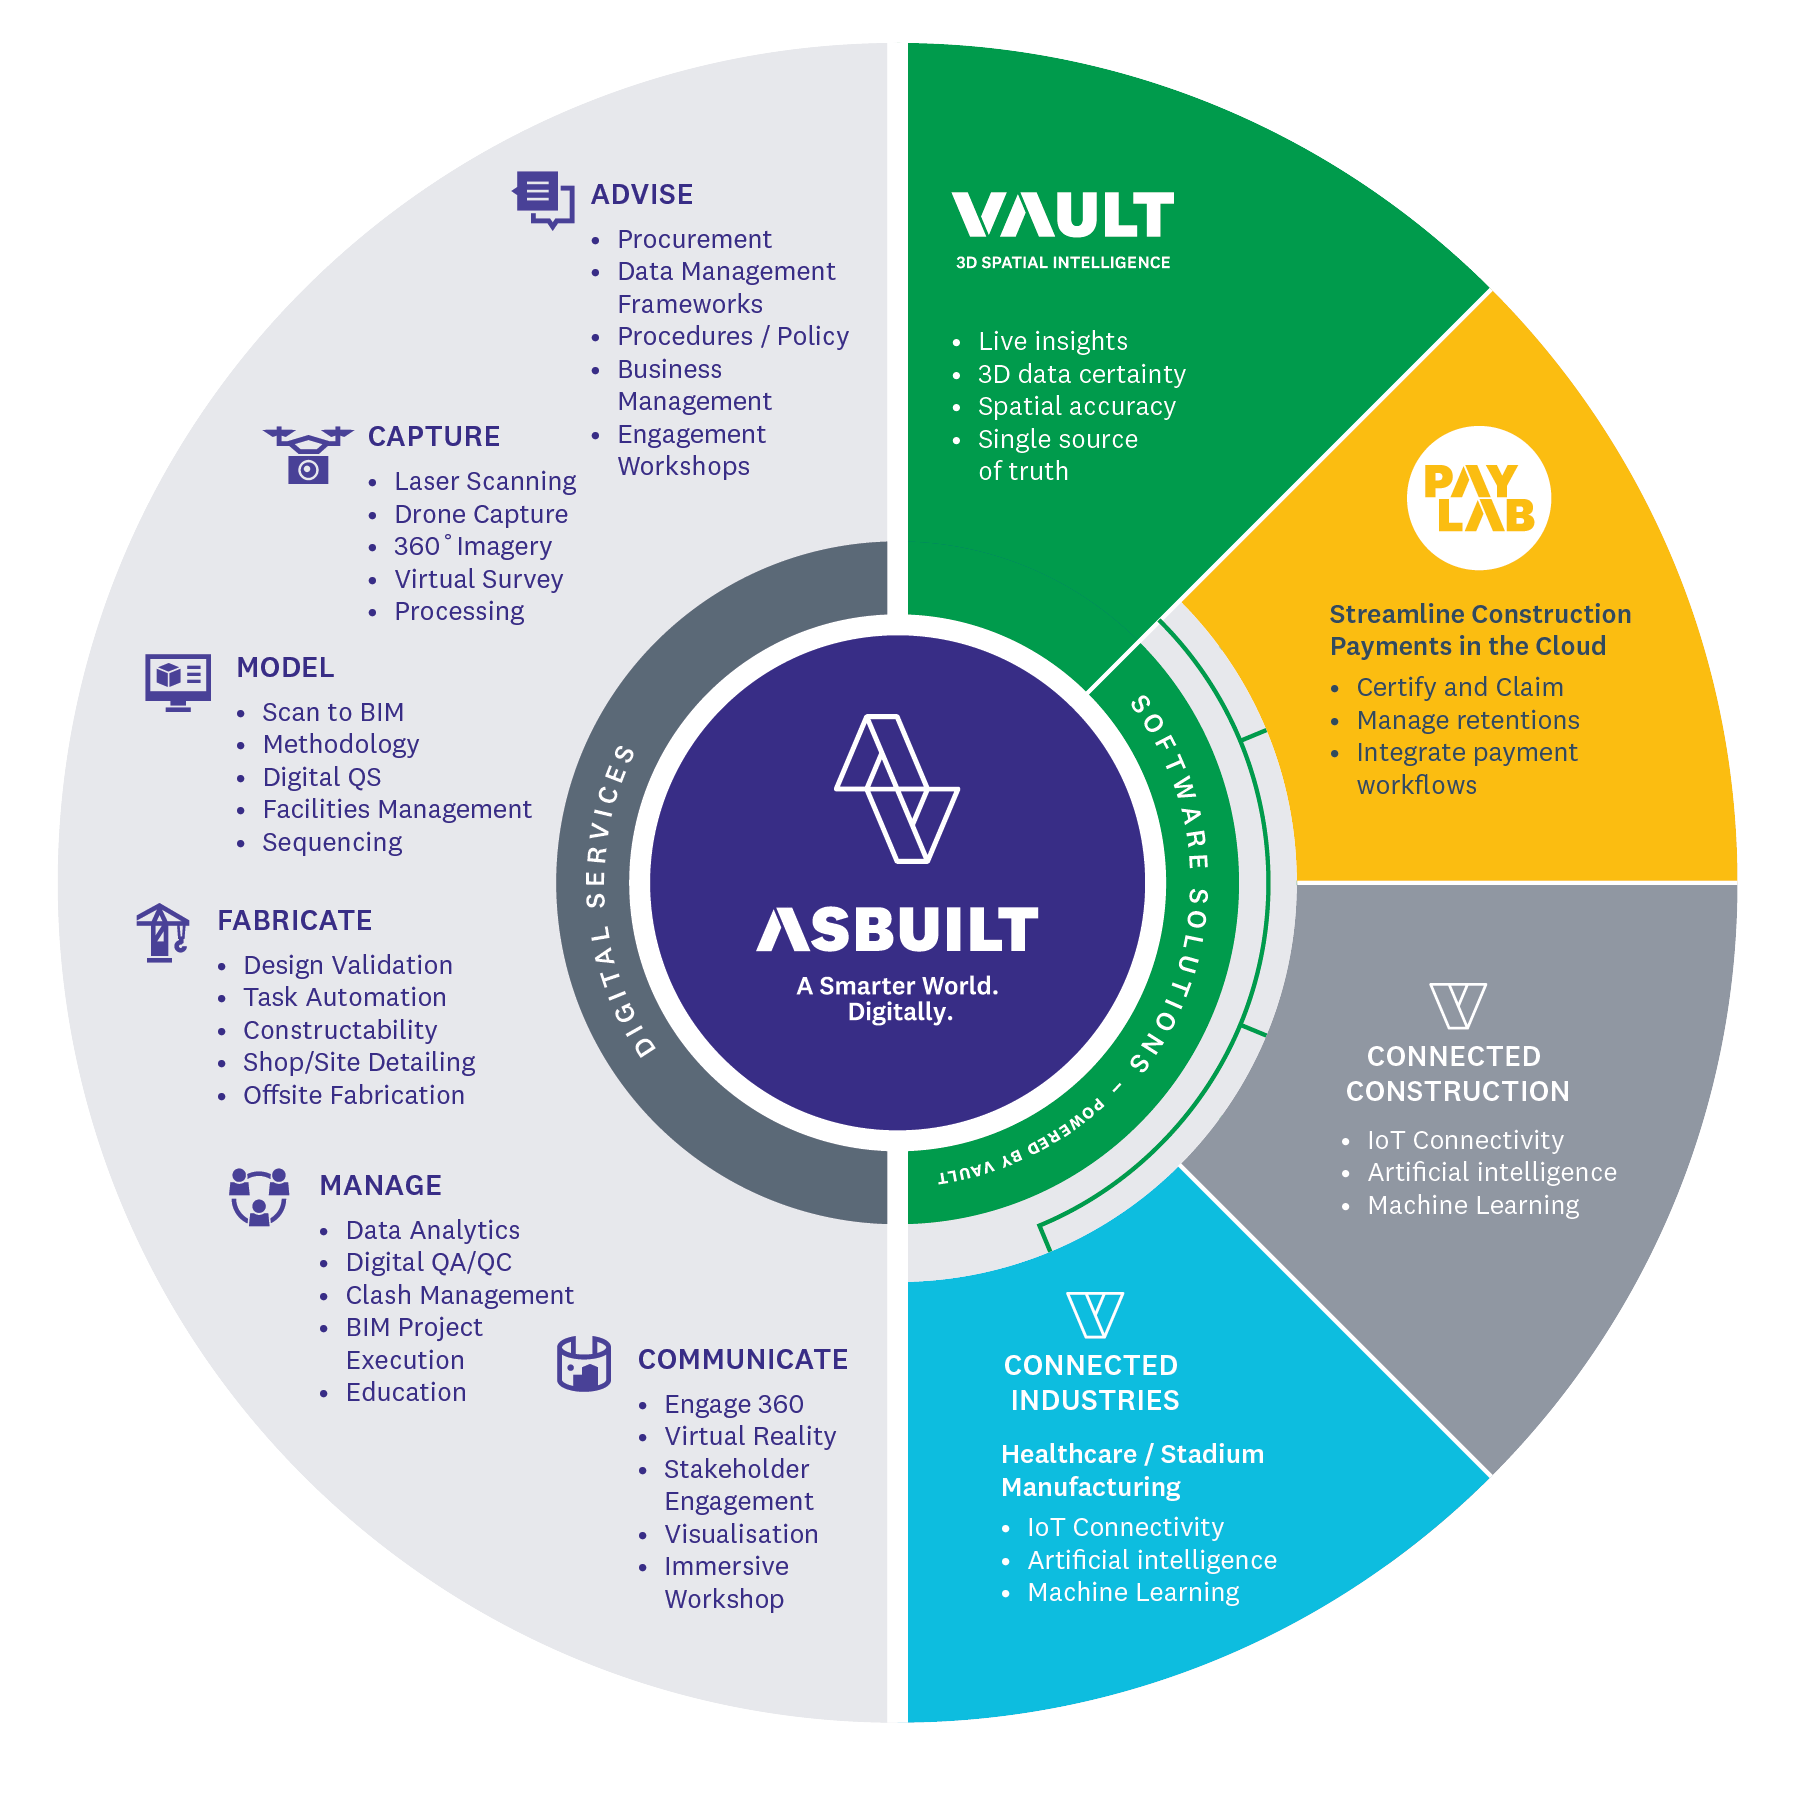 Vault – Forged from Constructability - Our Ecosystem Diagram